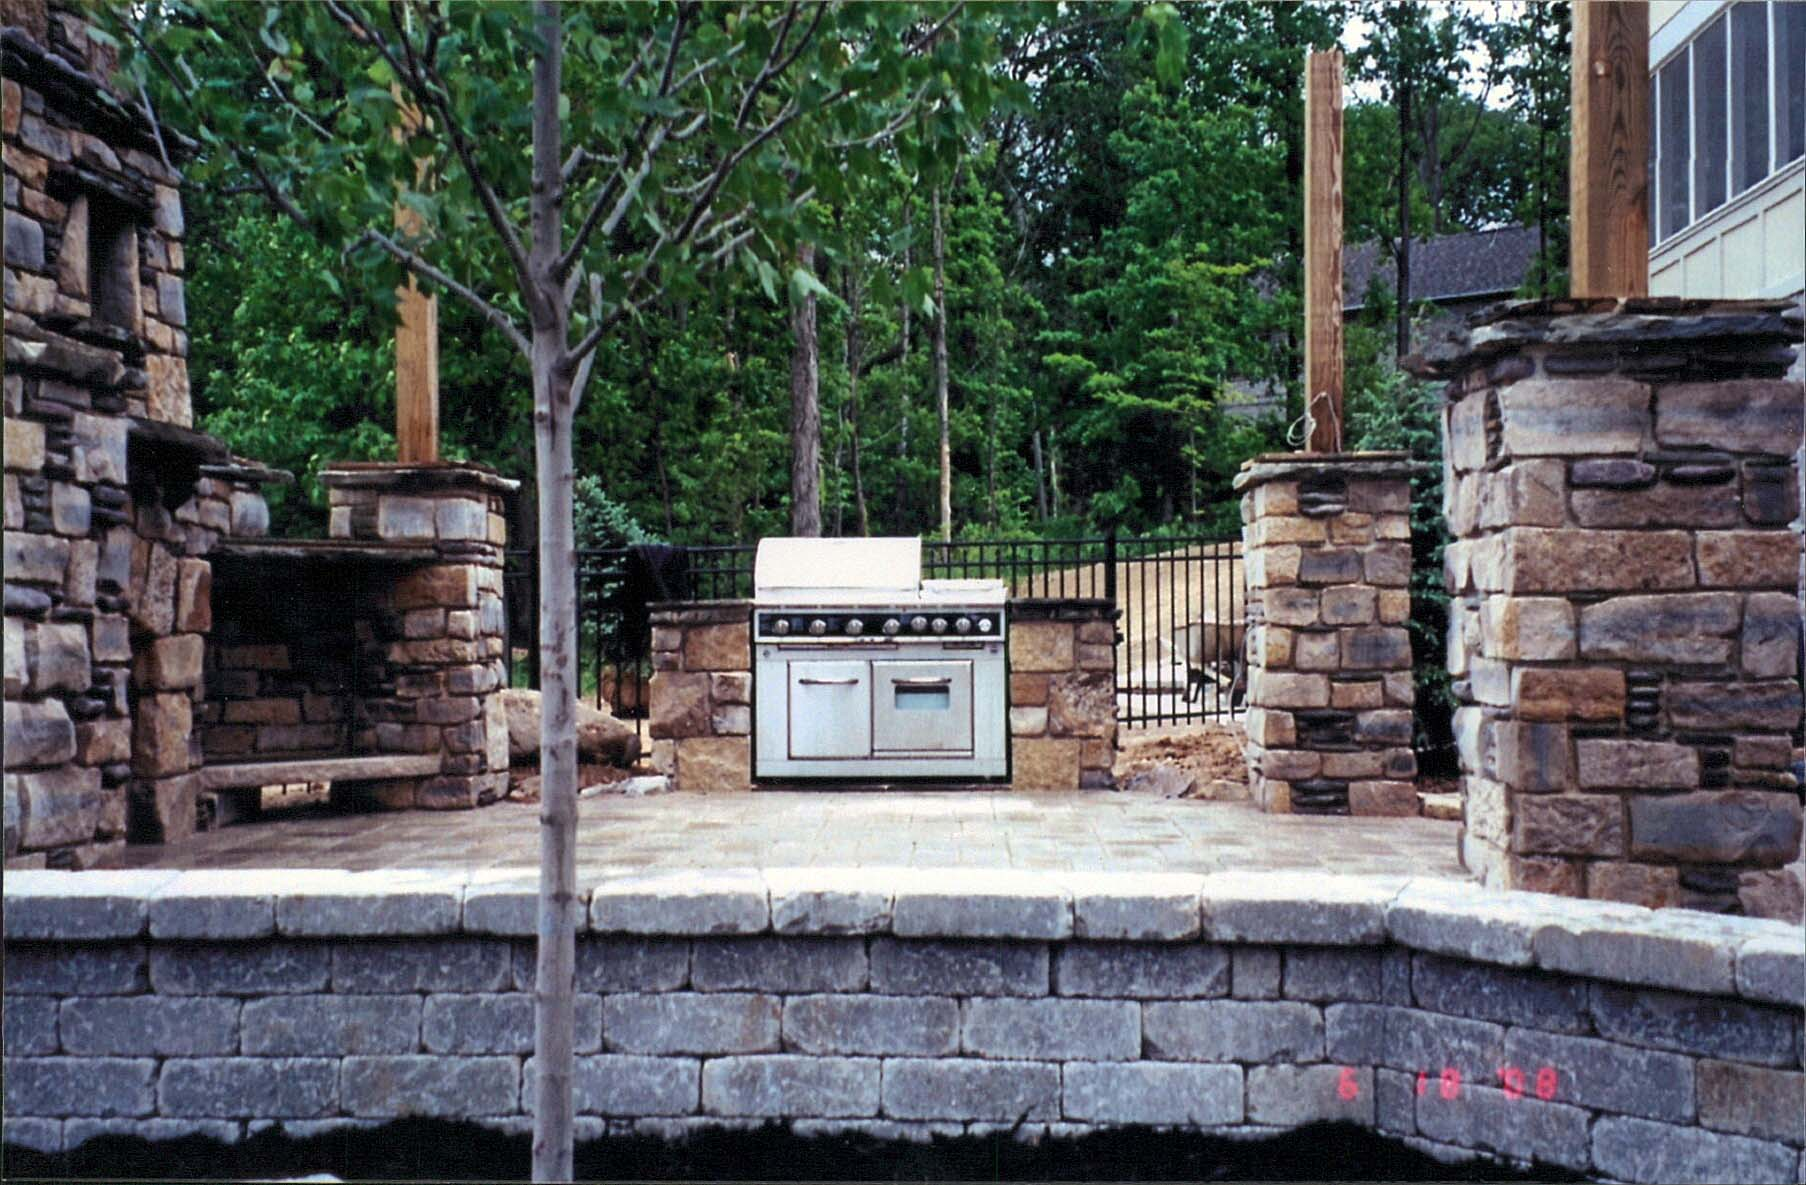 ... Outdoor Living, Patio, Stone. Advertisements